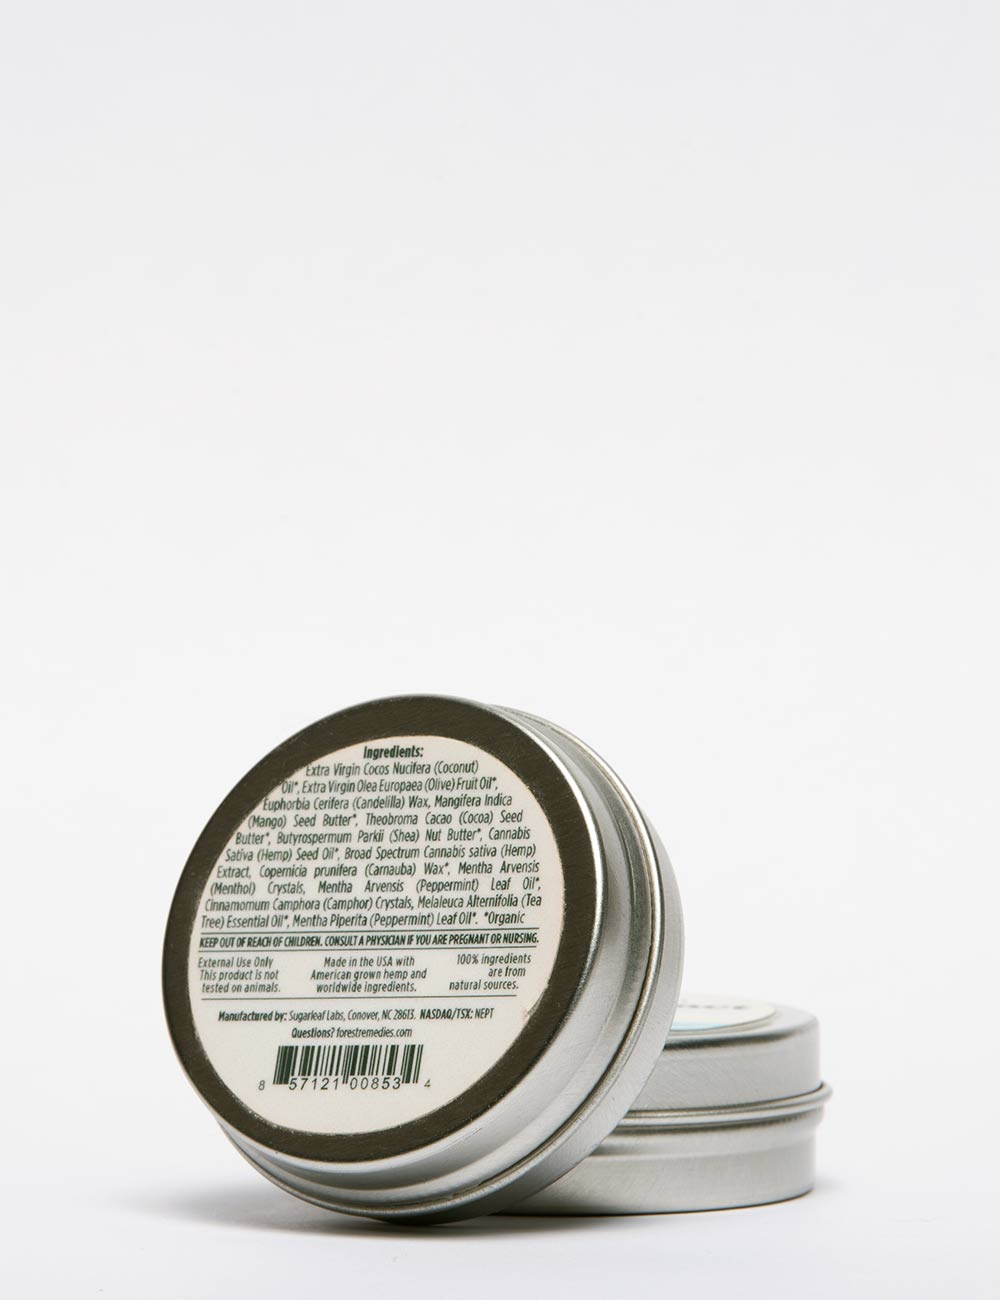 Mint Hemp CBD Oil & Balm